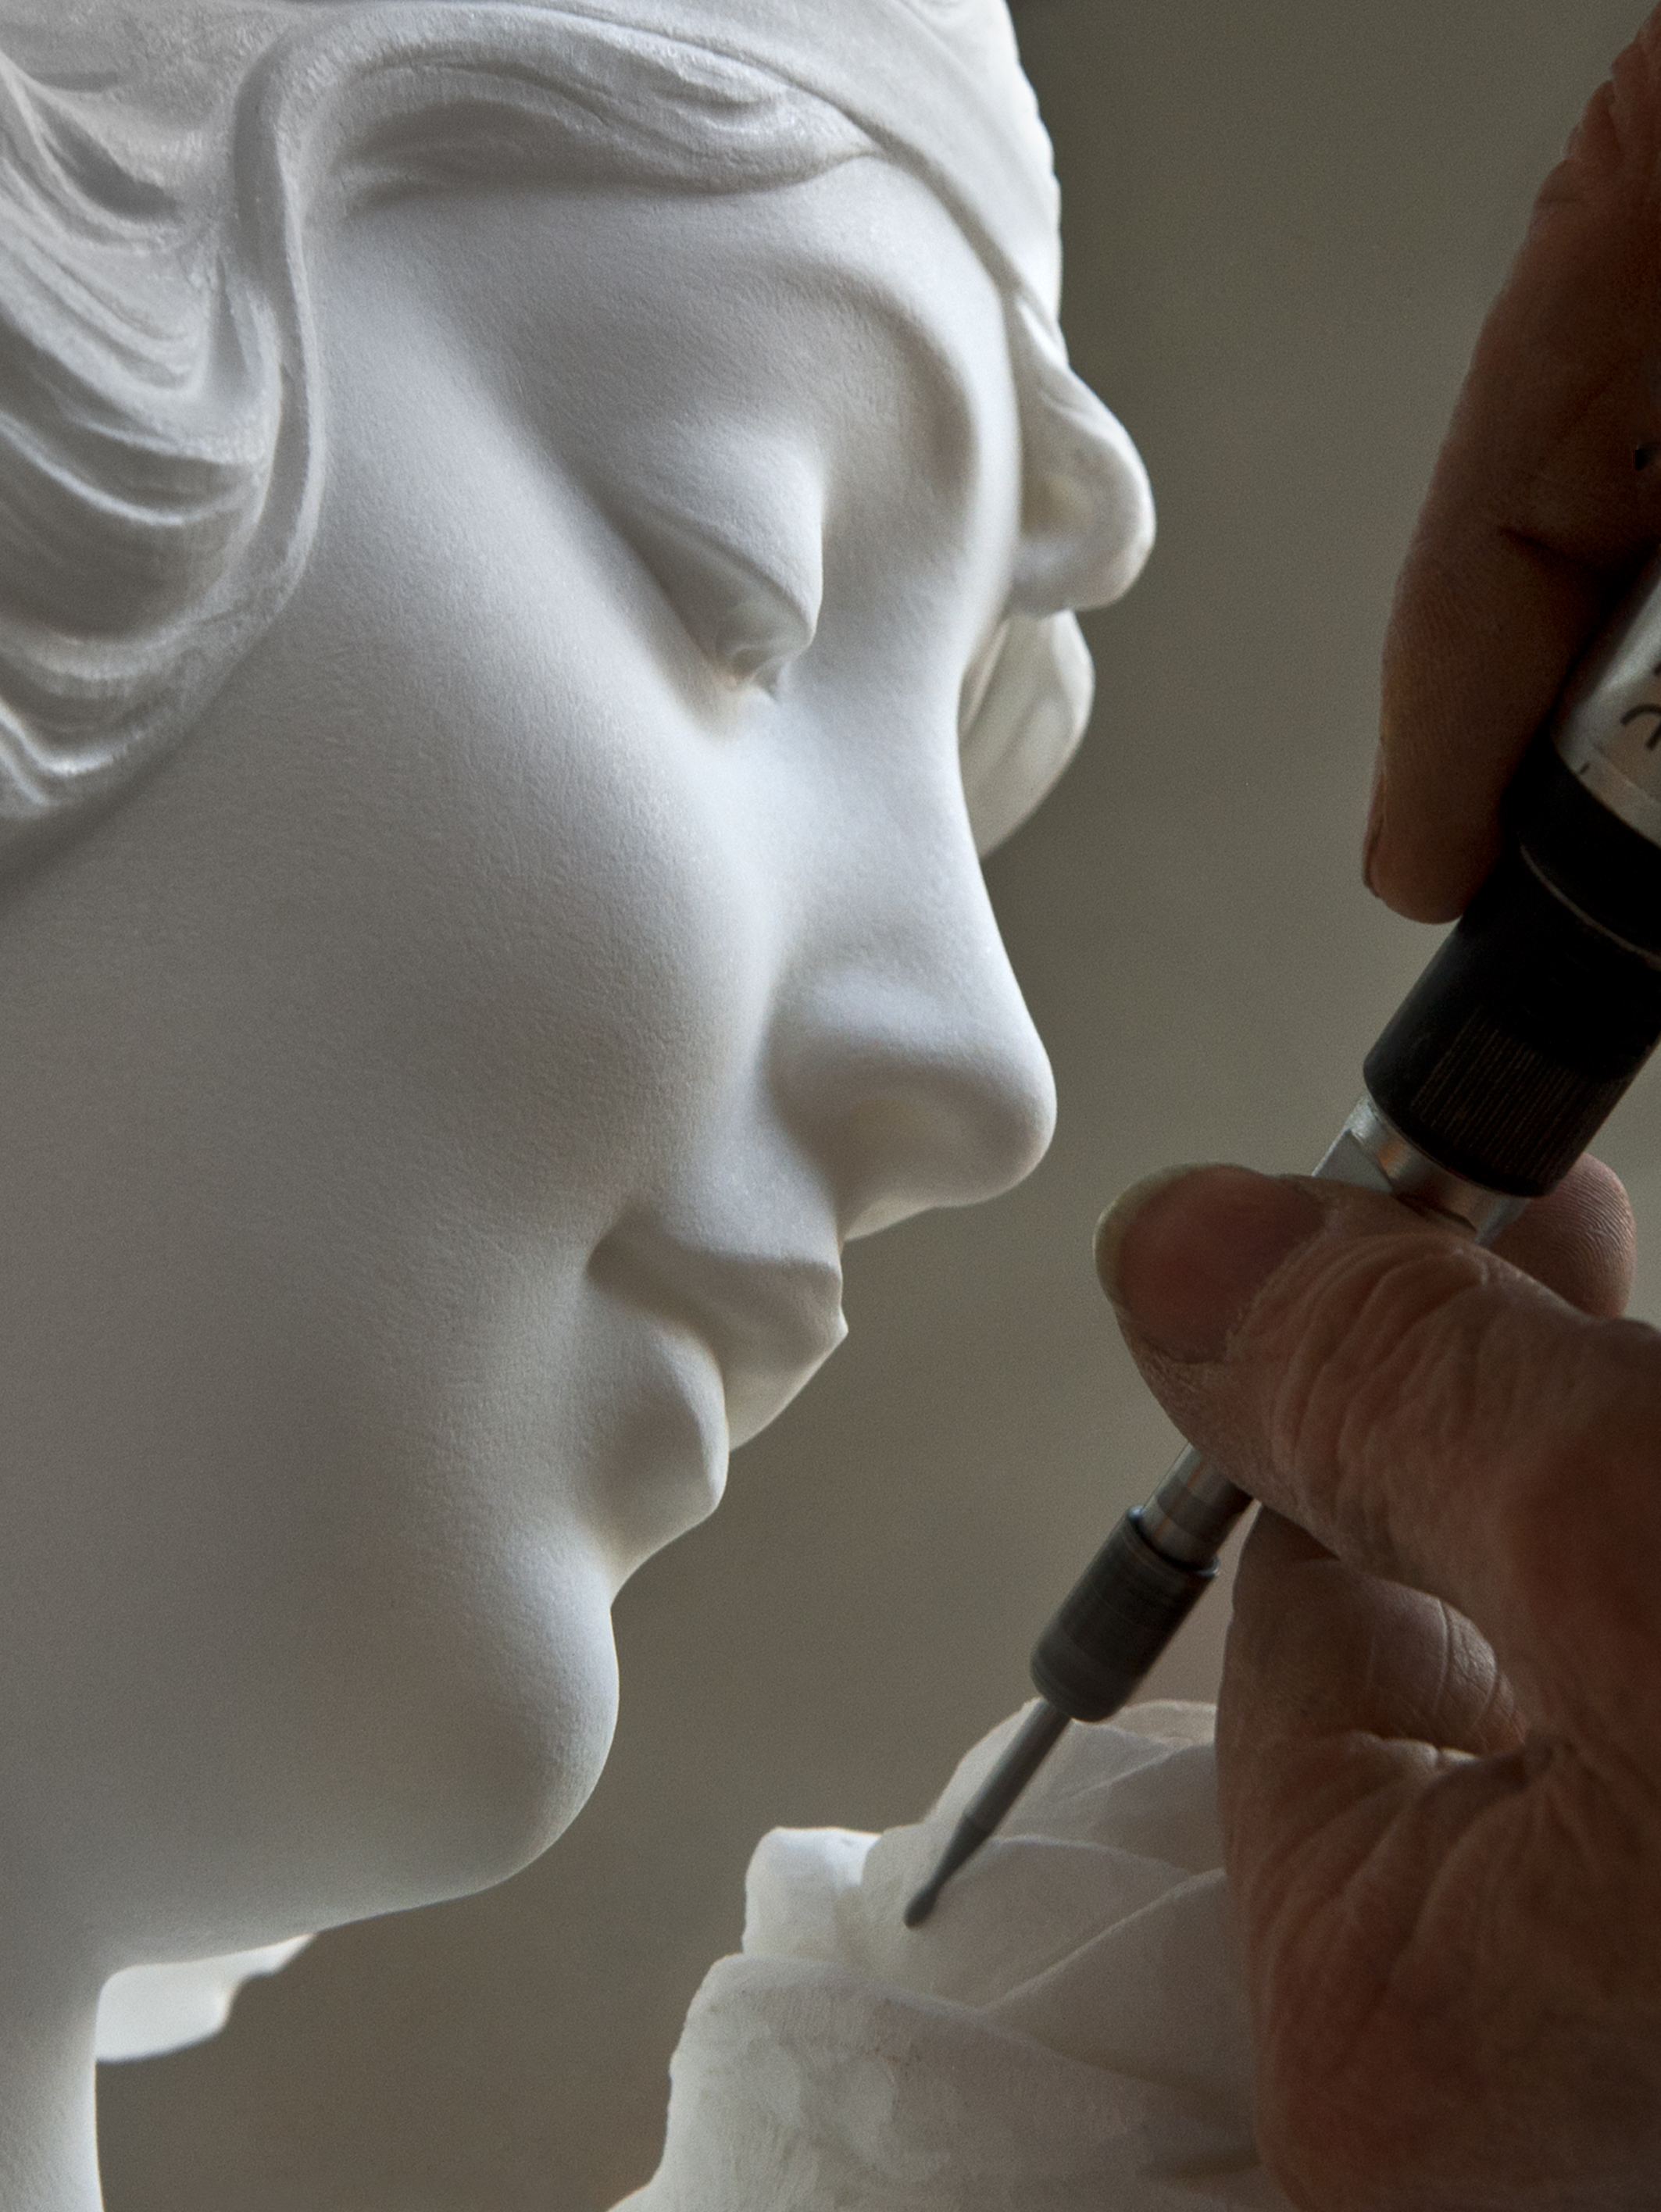 enzo-cei-made-in-pietrasanta-art-sculpture.jpg